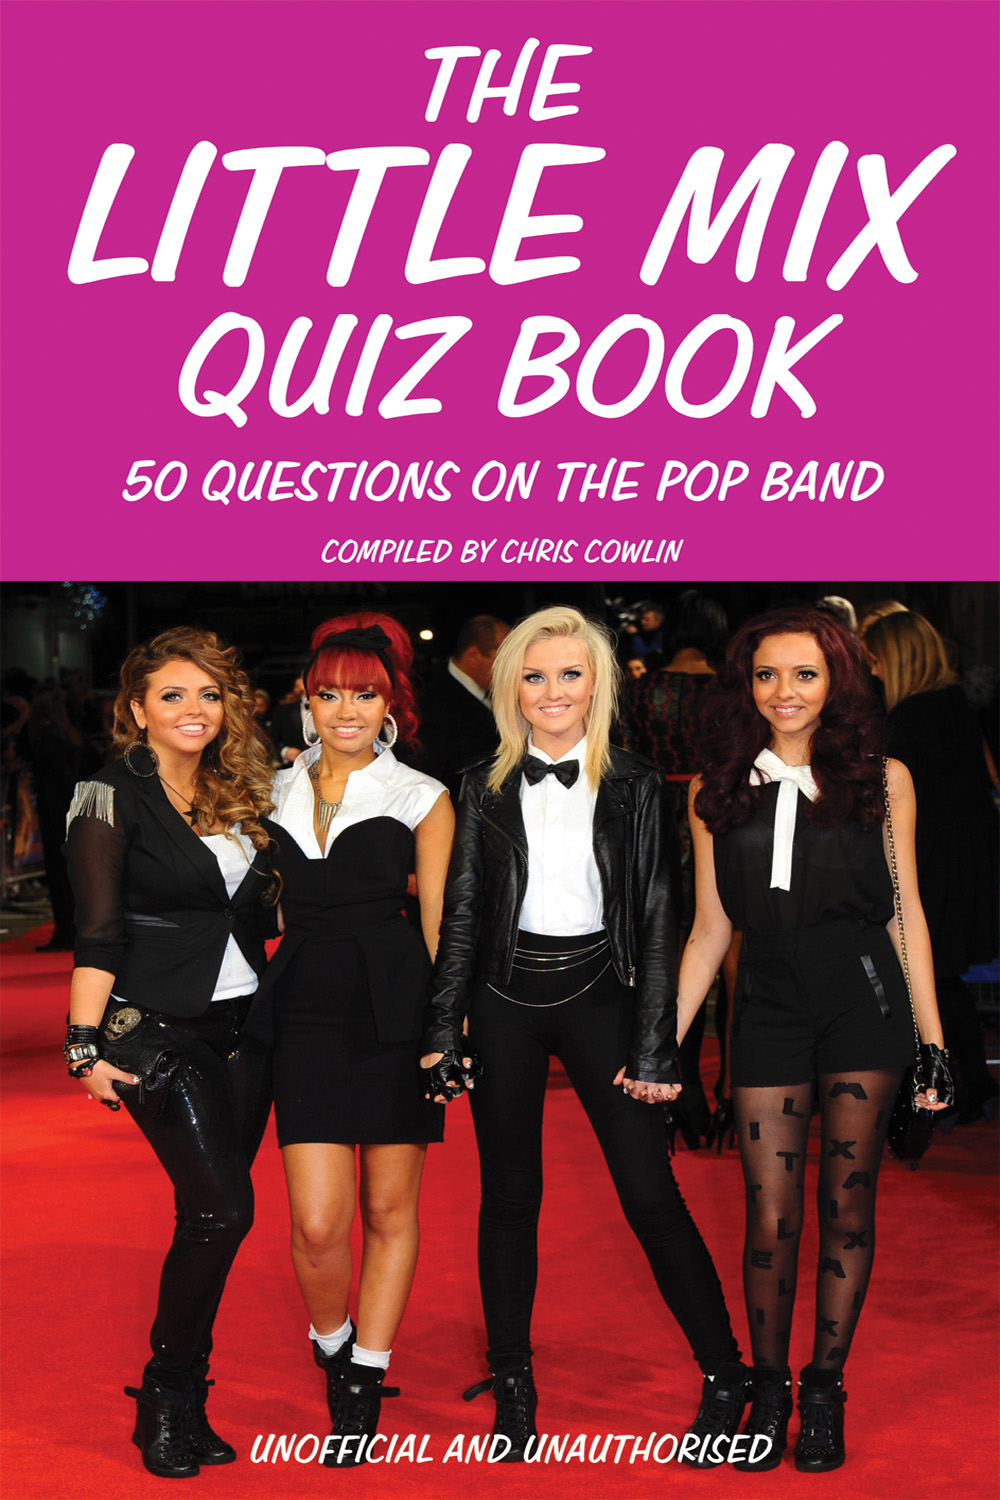 The Little Mix Quiz Book